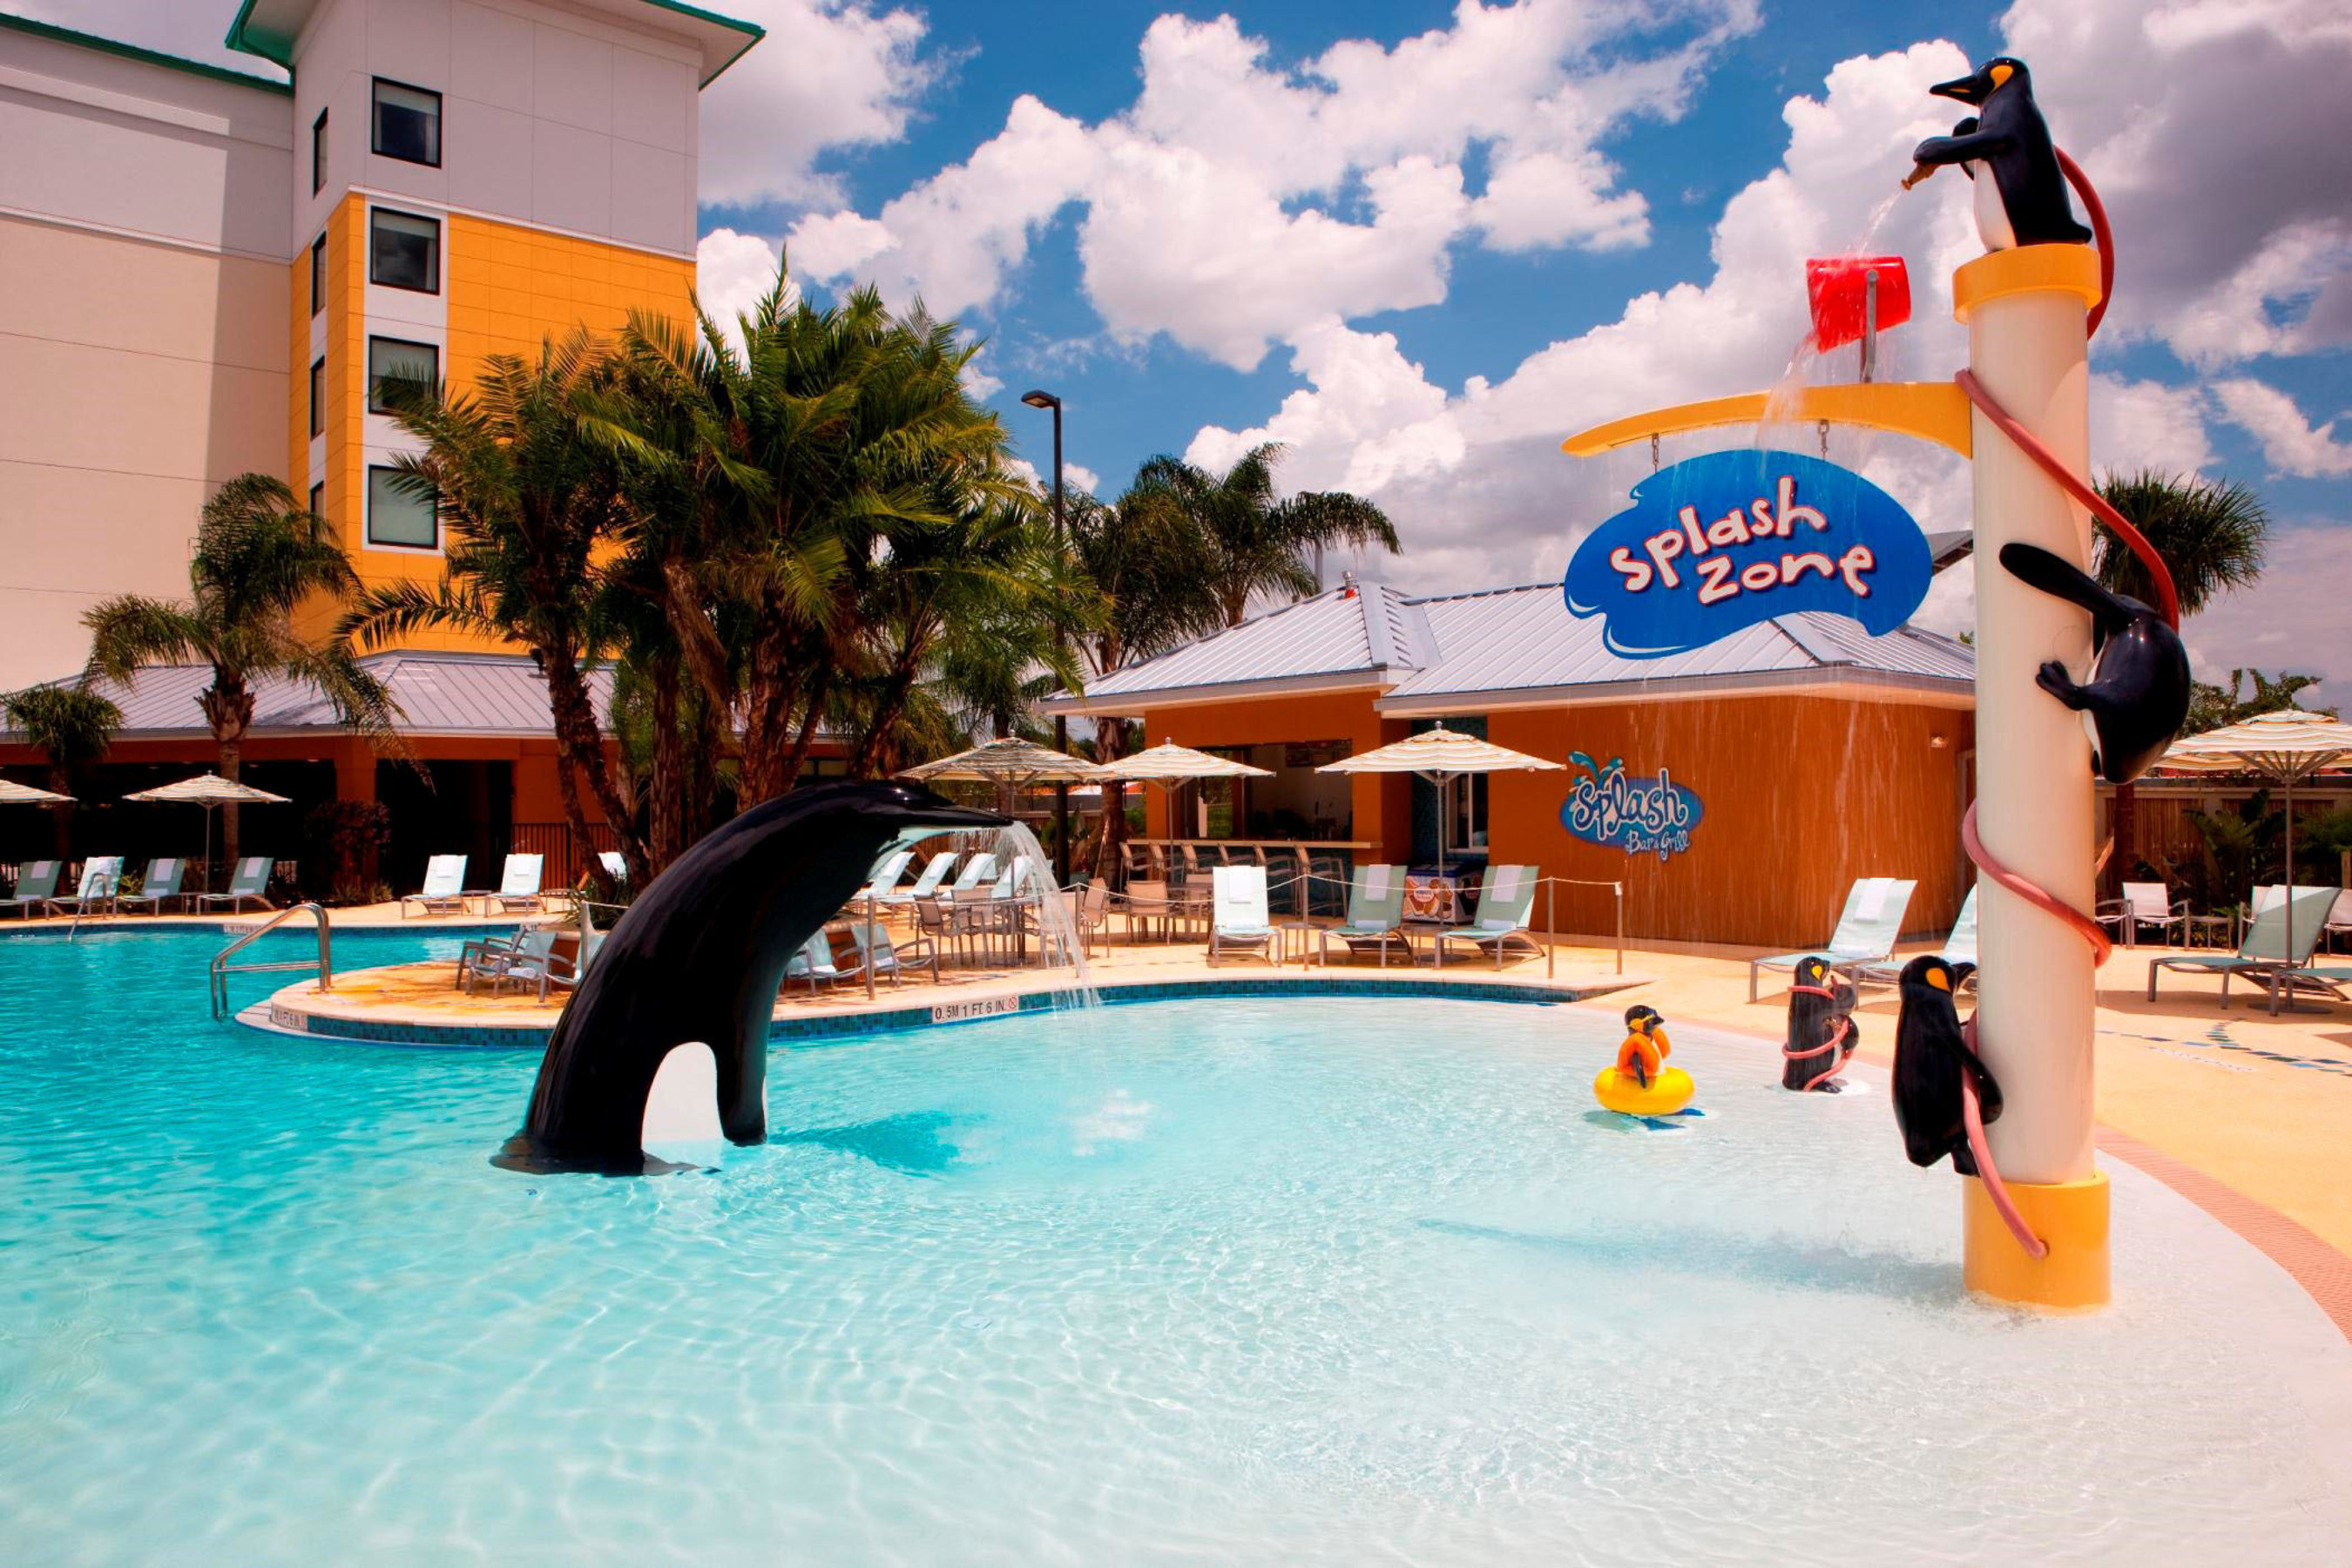 SpringHill Suites Orlando at SeaWorld, Fairfield Inn & Suites Orlando at SeaWorld and Residence Inn Orlando at SeaWorld offer easy access to Viva La Musica along with special benefits including complimentary quick queue at SeaWorld and free transportation to Orlando's hottest theme parks. For information, contact Jamie Caraher at 1-407-354-1176.